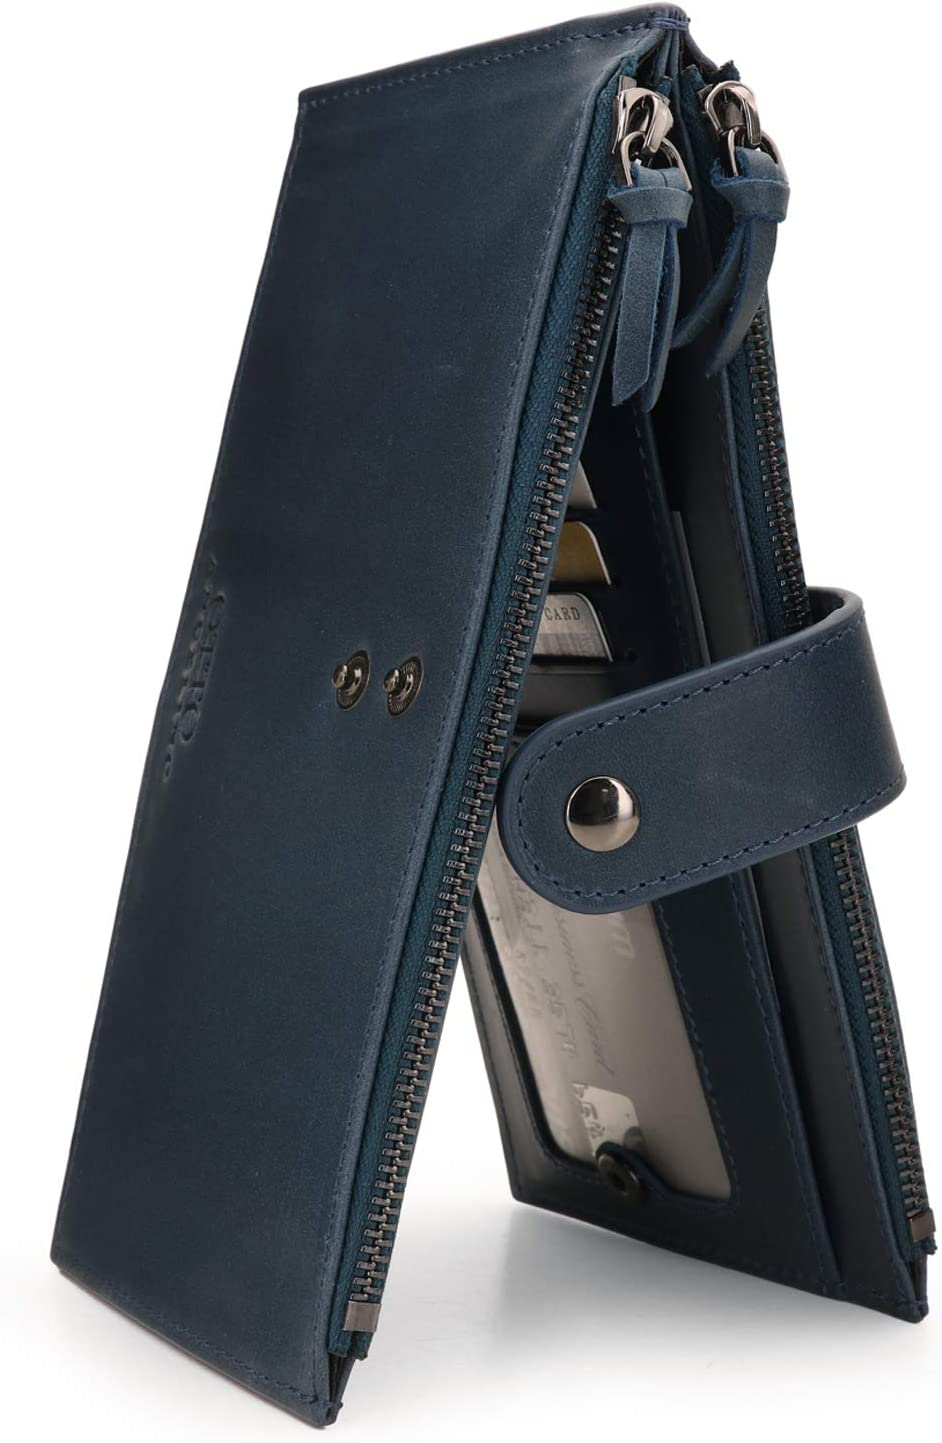 Otto Angelino Genuine Leather 2 Compartment Bifold Wallet Clutch with Phone Compatible Slots - RFID Blocking - Unisex